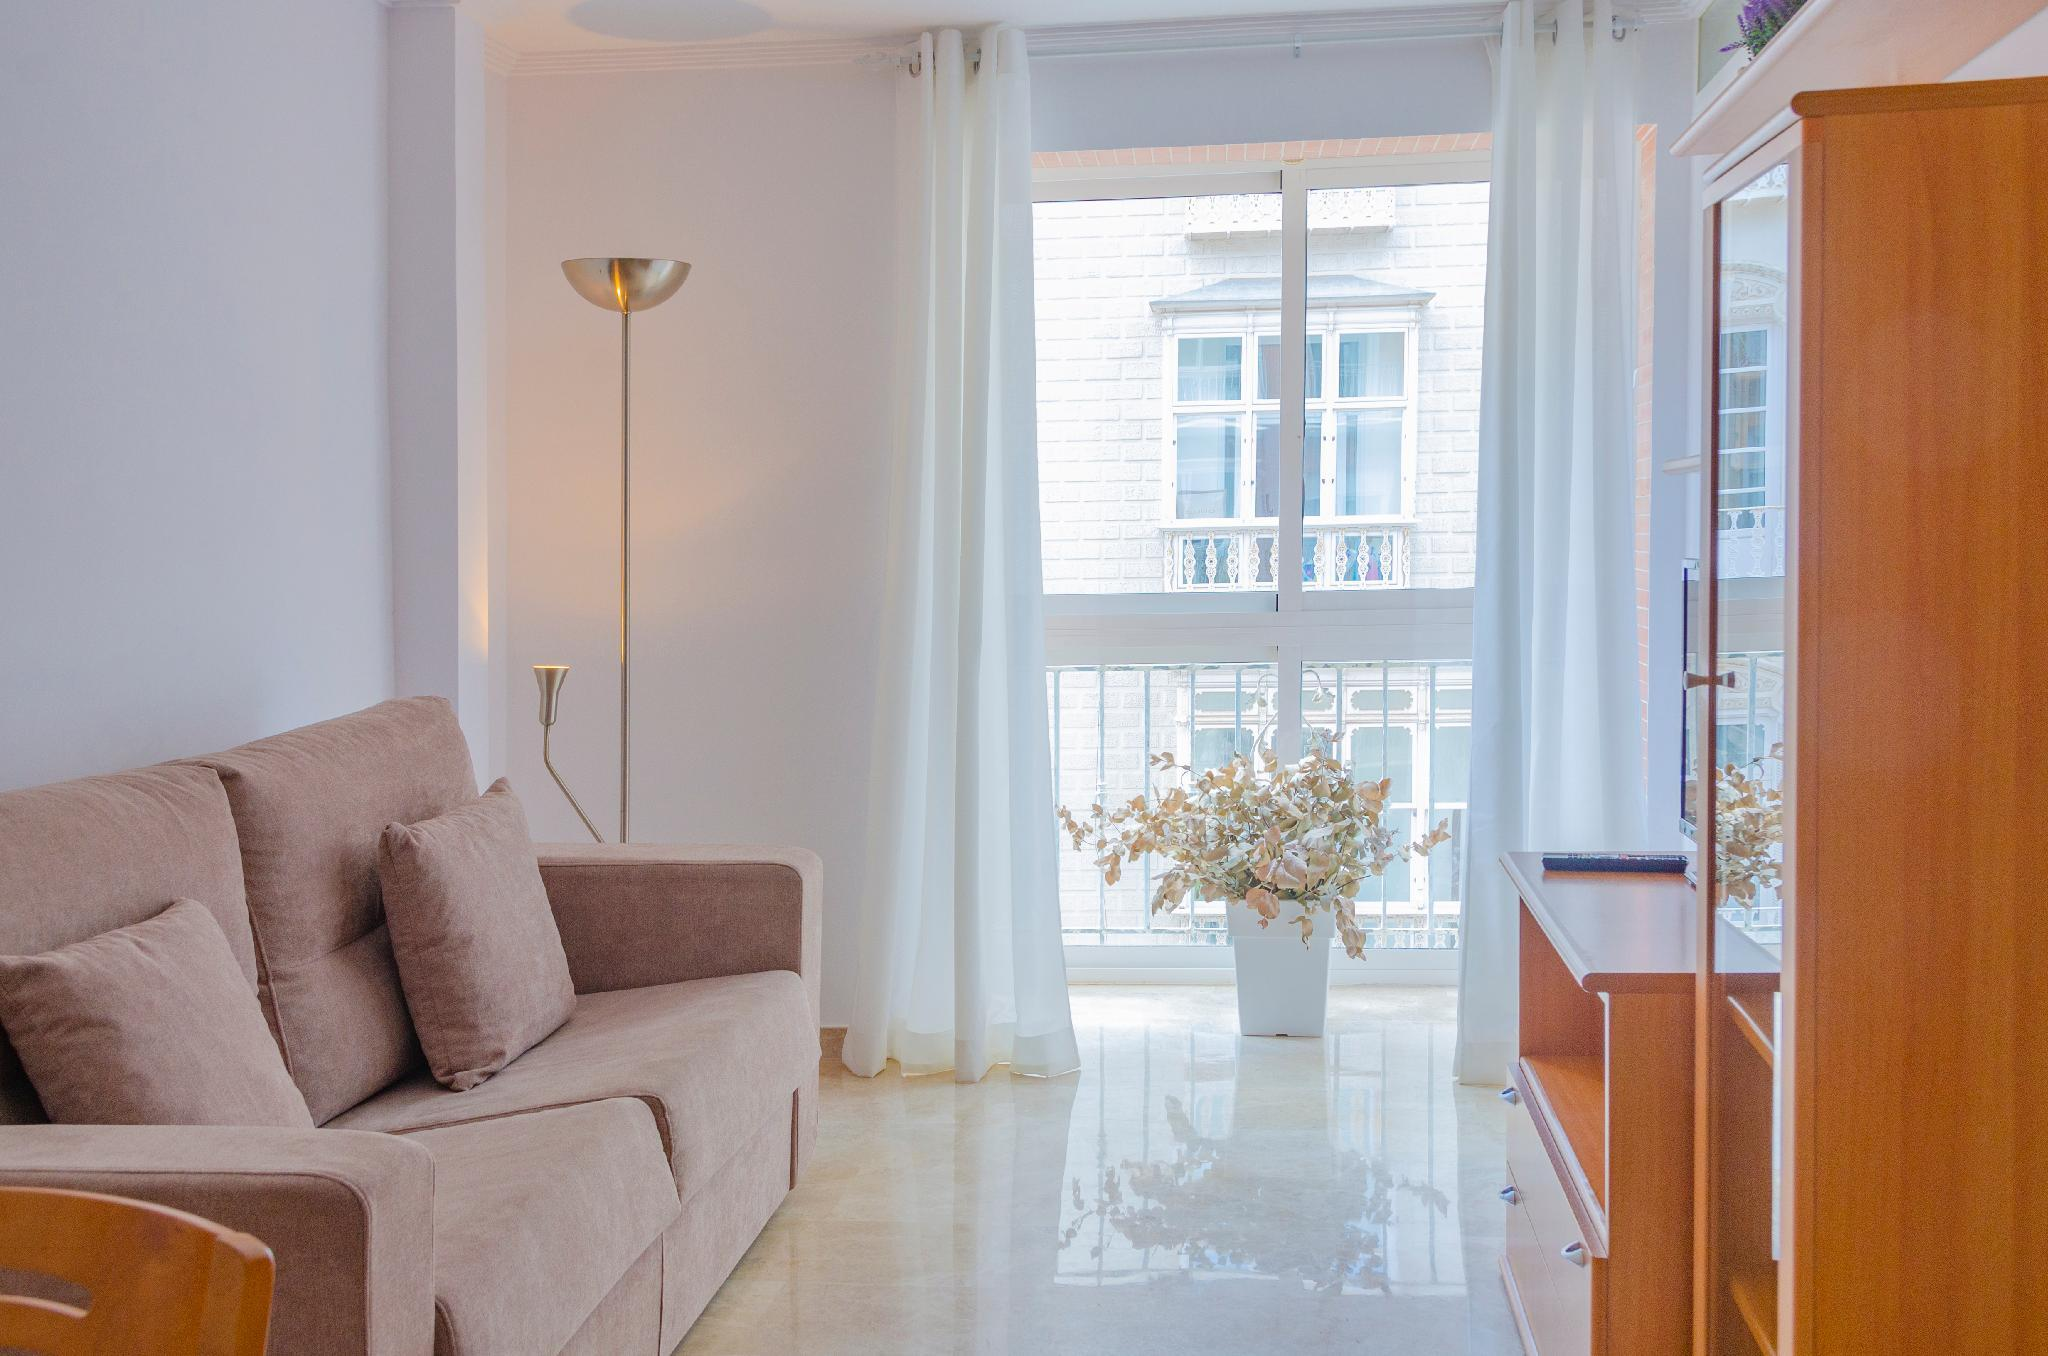 4A Apartment The Best Zone Cartagena+wifi+parking